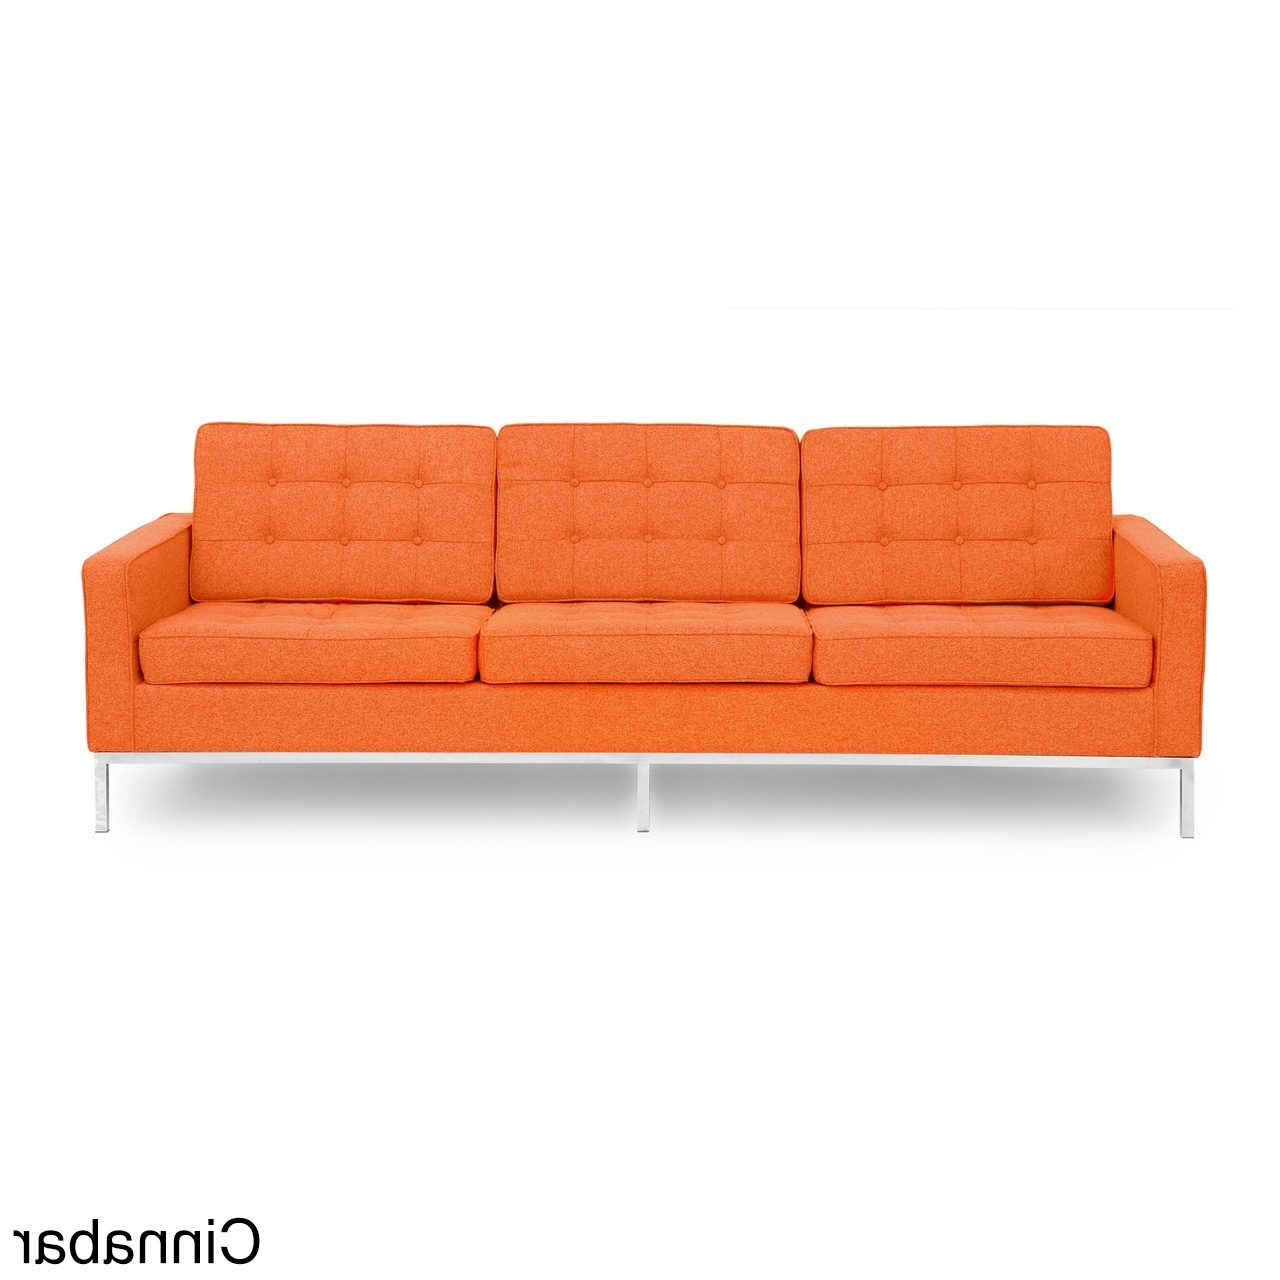 Kardiel Florence Knoll Style Sofa 3 Seat, Premium Fabric Within Most Recently Released Florence Knoll Fabric Sofas (View 11 of 15)